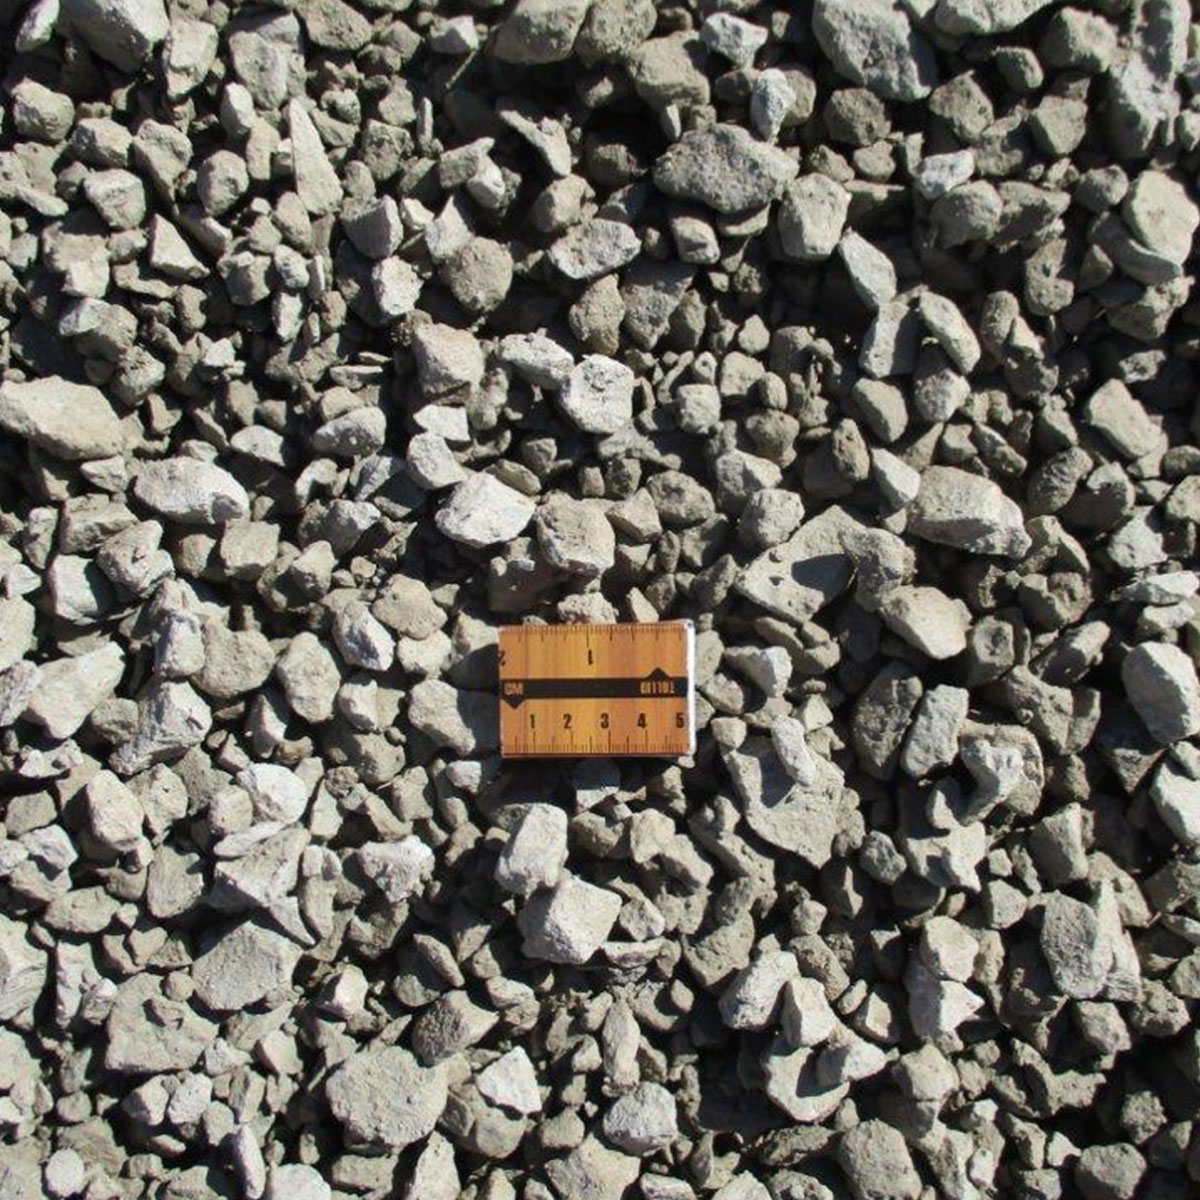 Gravel with the size of 4-16